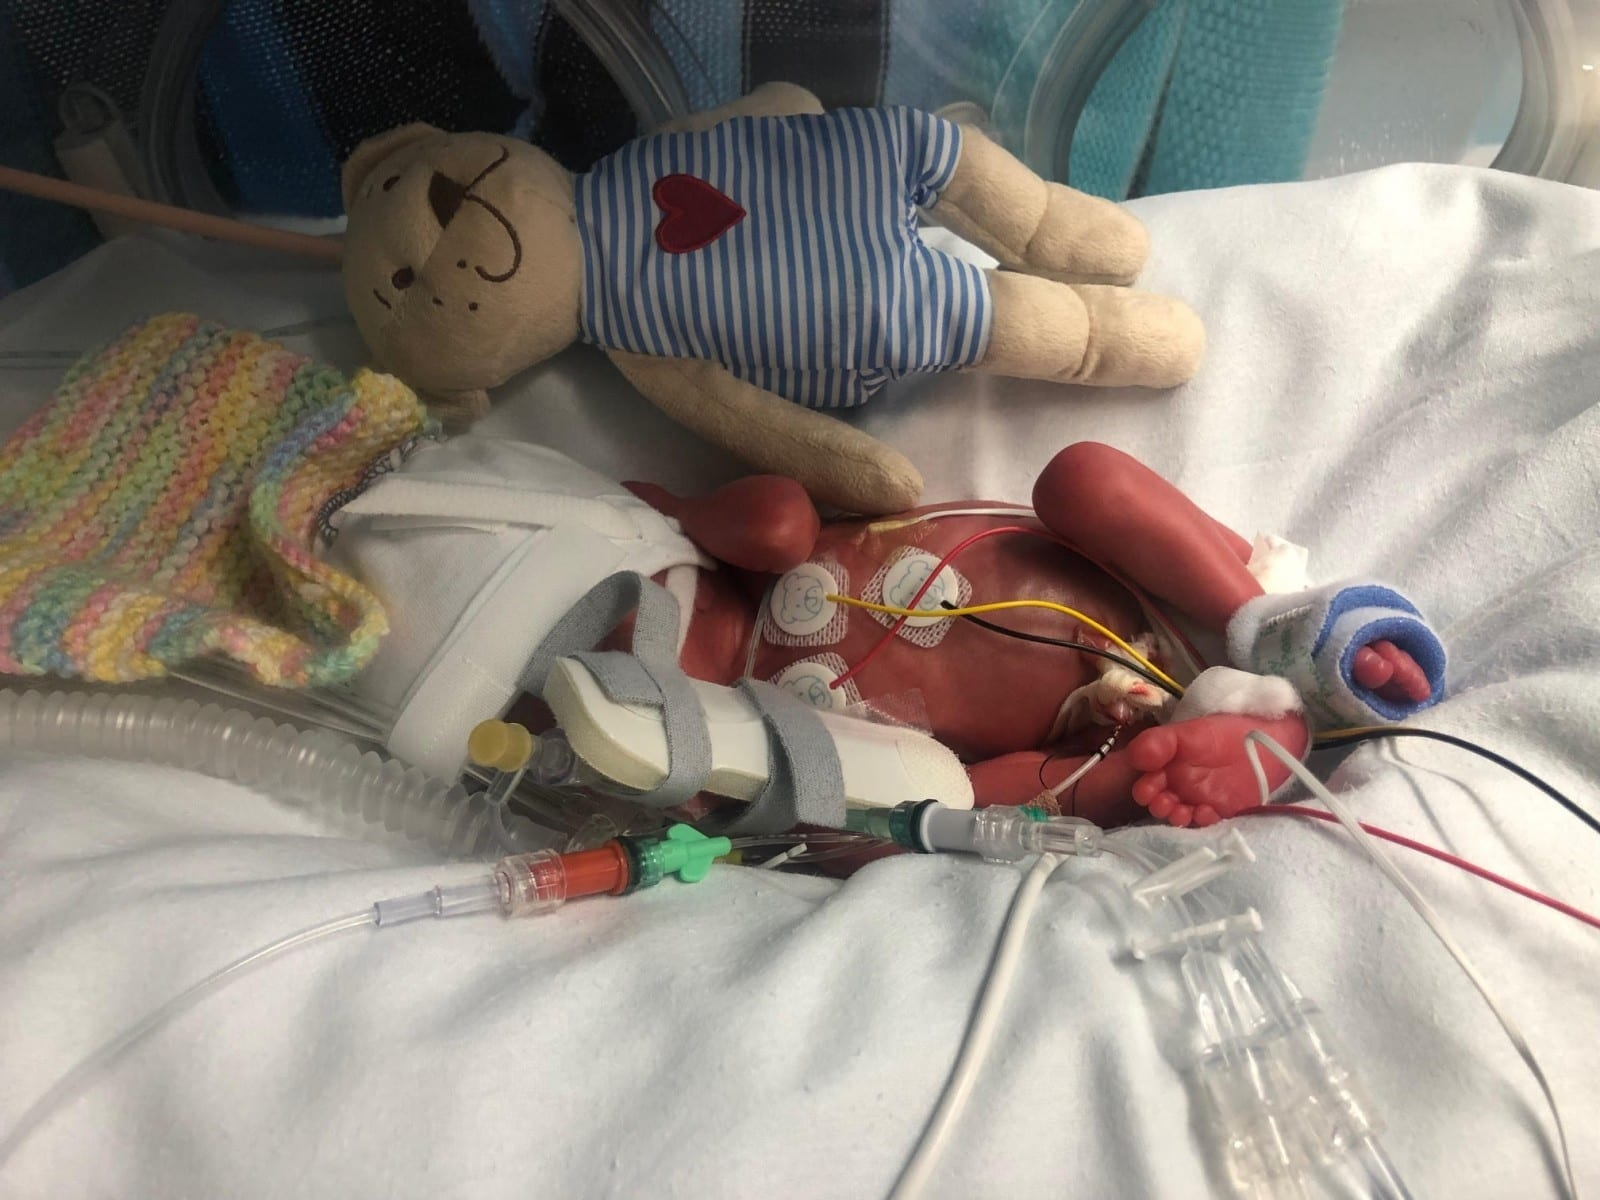 'You Could Hold Him In The Palm Of Your Hand' – Tiny Baby Who Arrived Almost Three Months Early – Was Dwarfed By His TEDDY BEAR